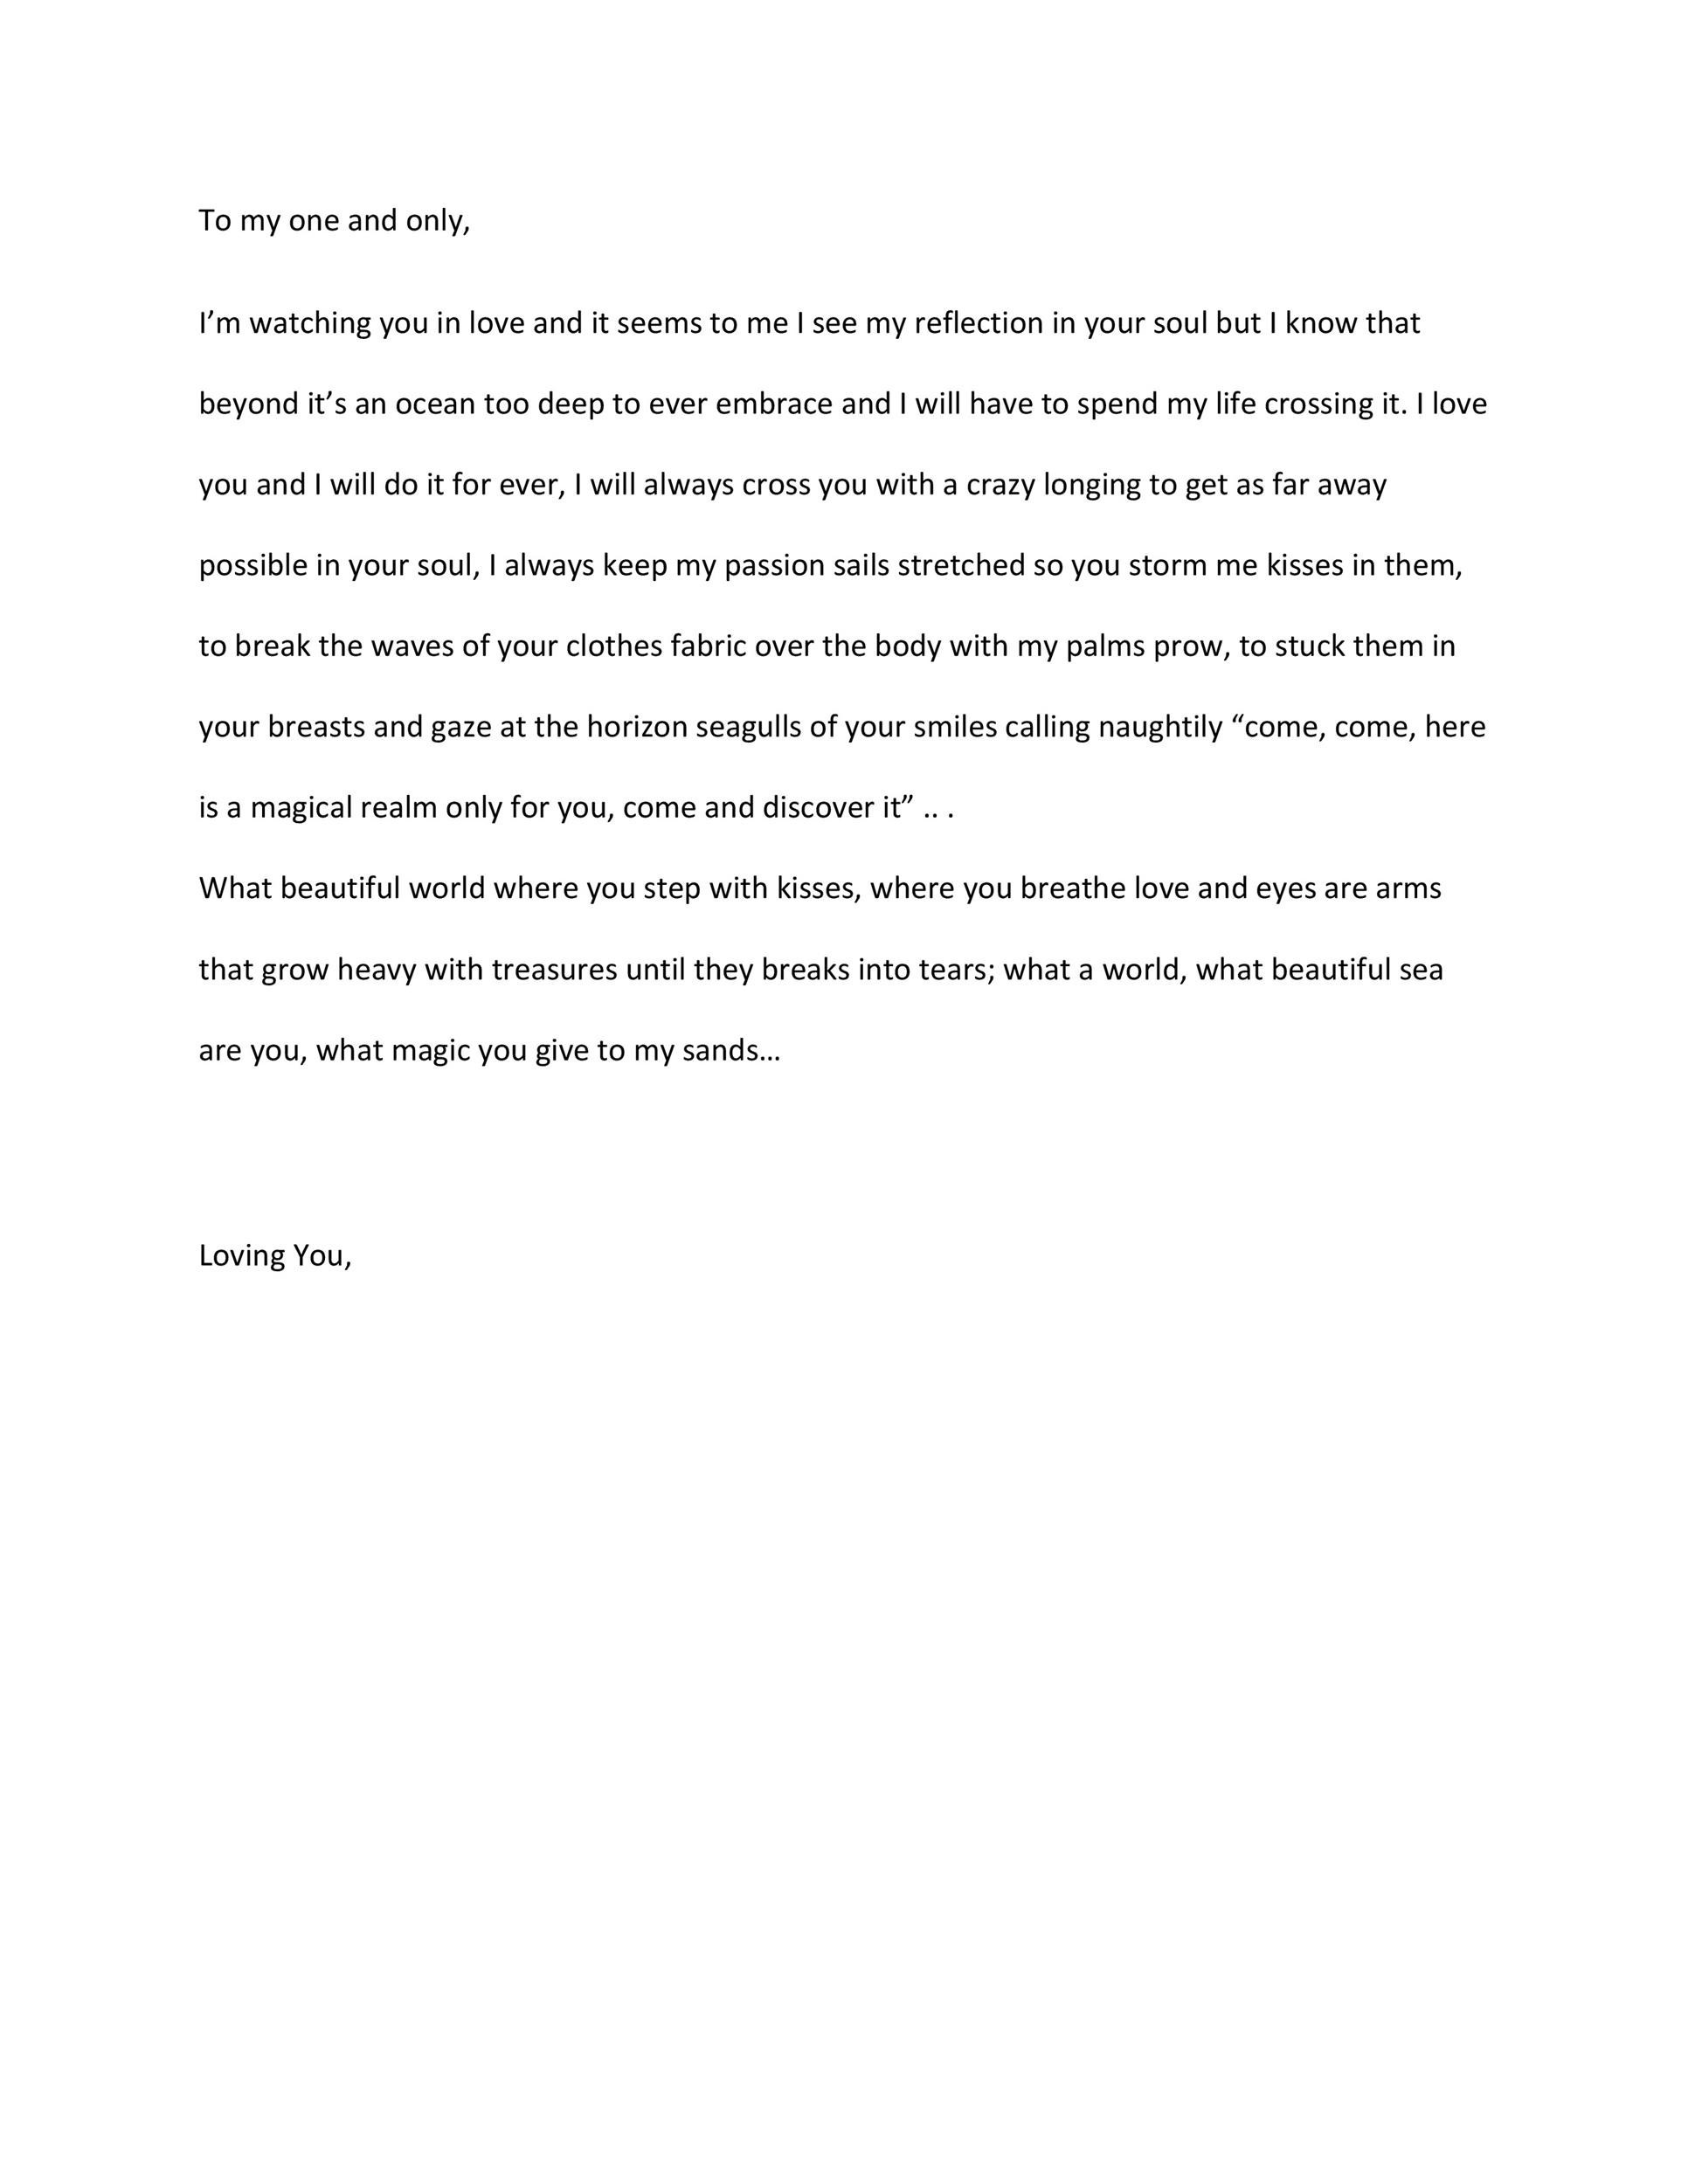 Free Love Letter Template 23